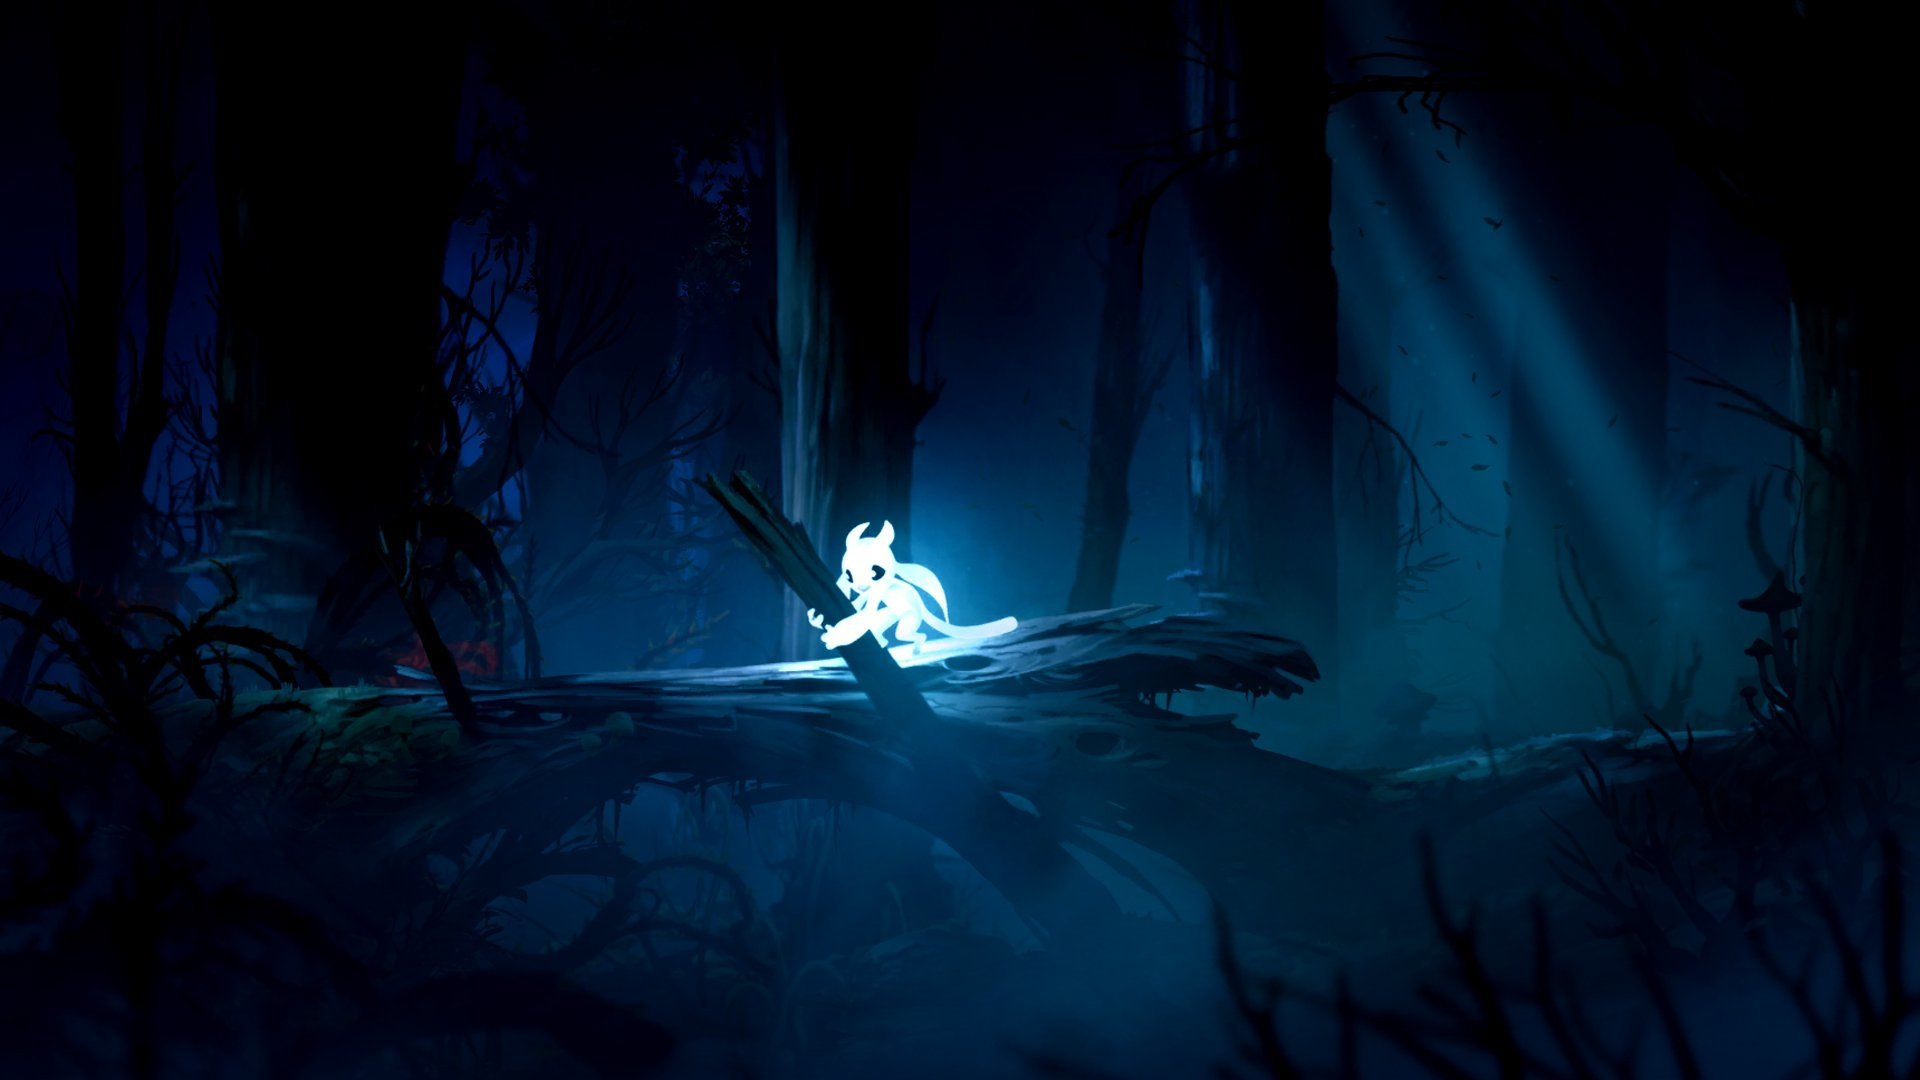 ori and the blind forest hd wallpaper | background image | 1920x1080